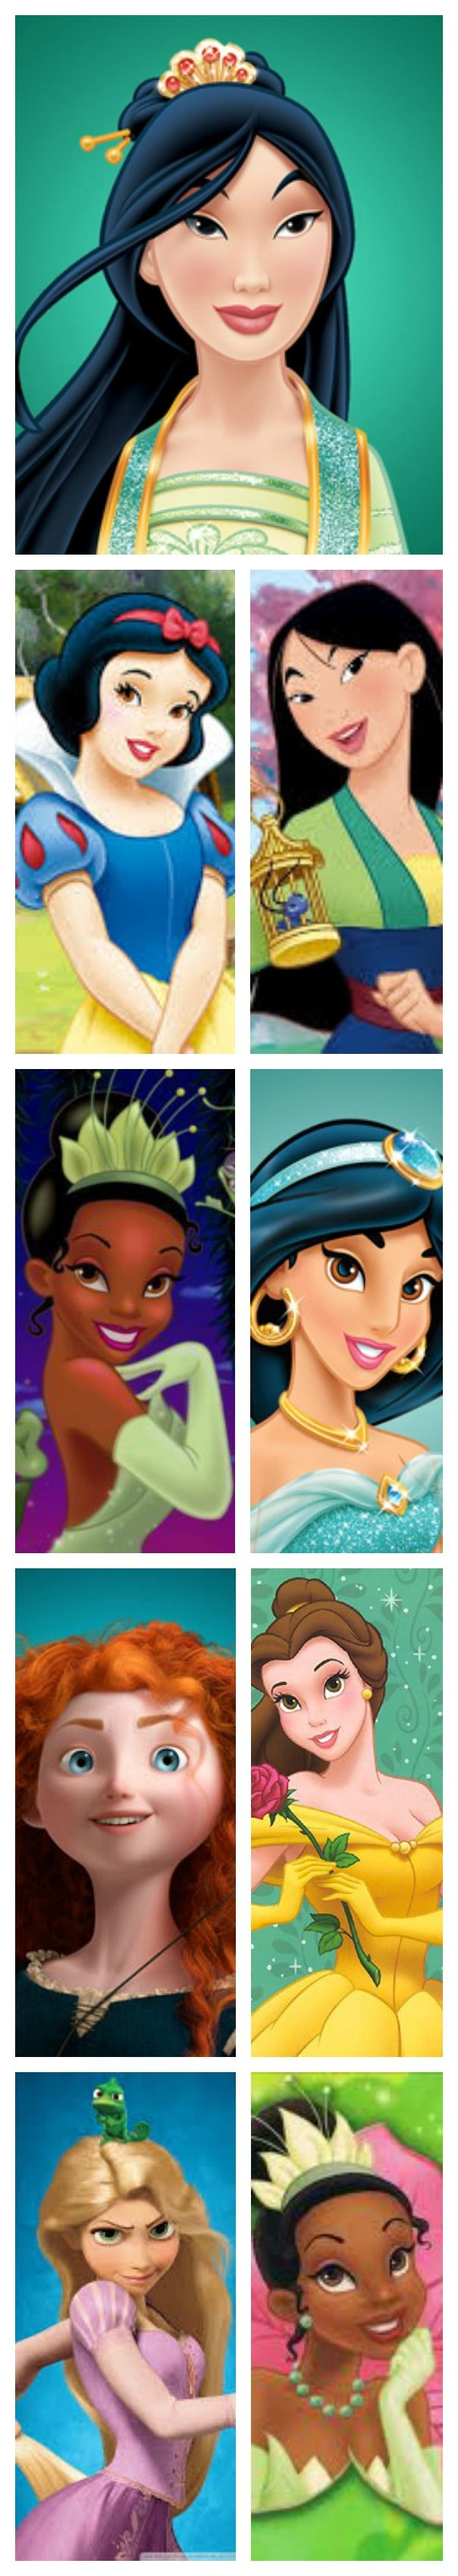 What Do Your Favorite #Disney Princesses Reveal About You? Take the quiz and find out.